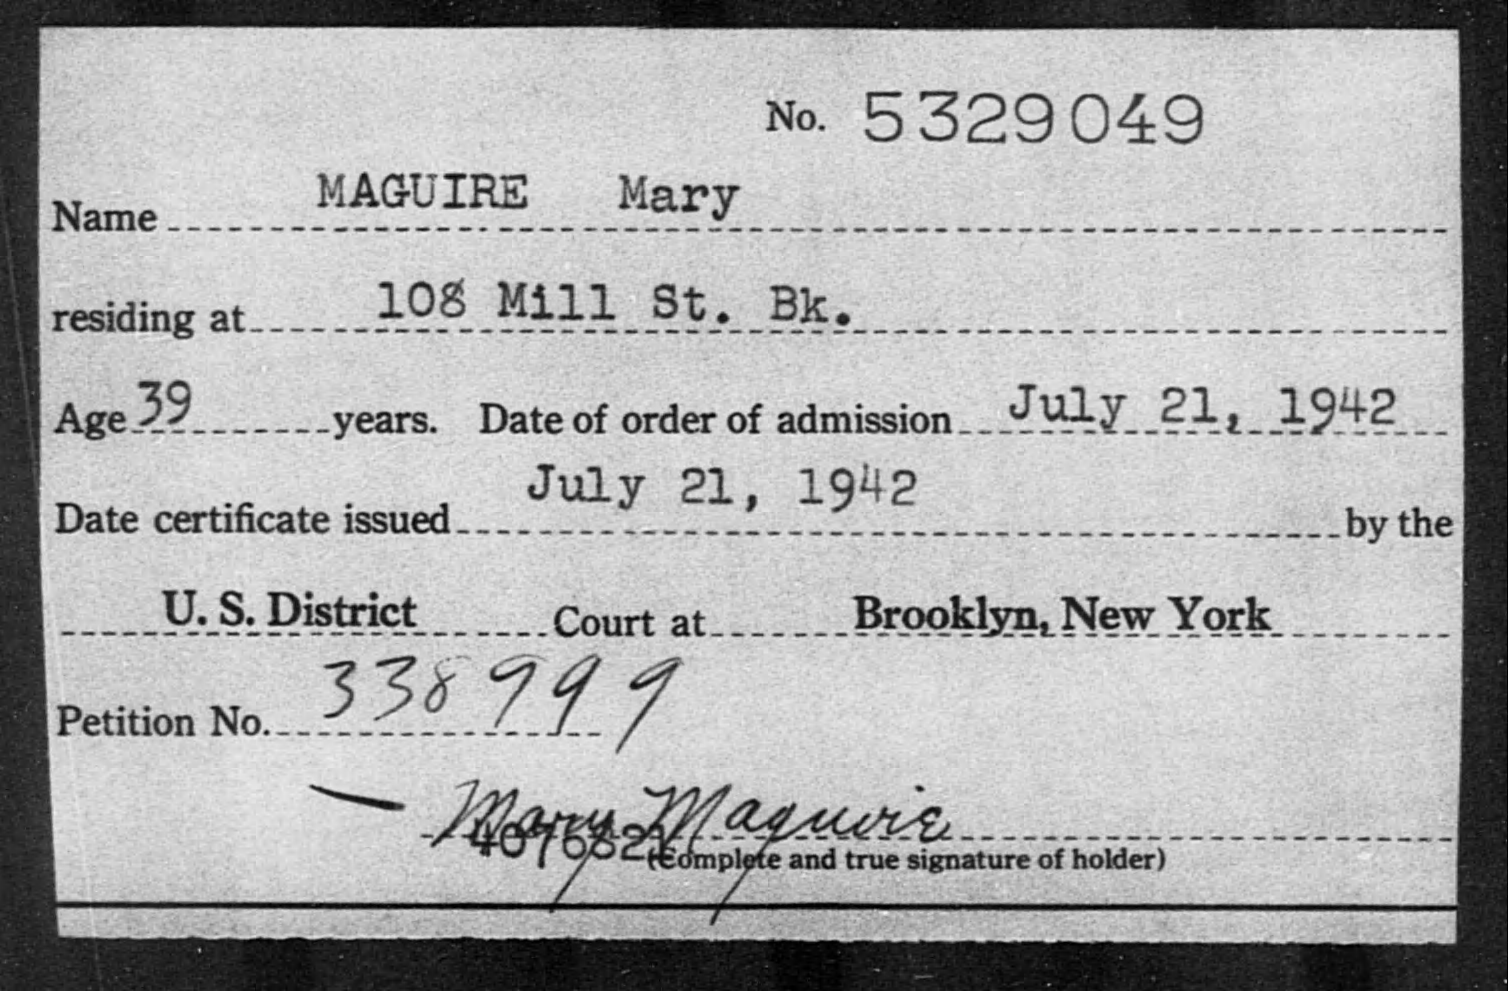 Maguire, Mary - Born: [BLANK], Naturalized: 1942